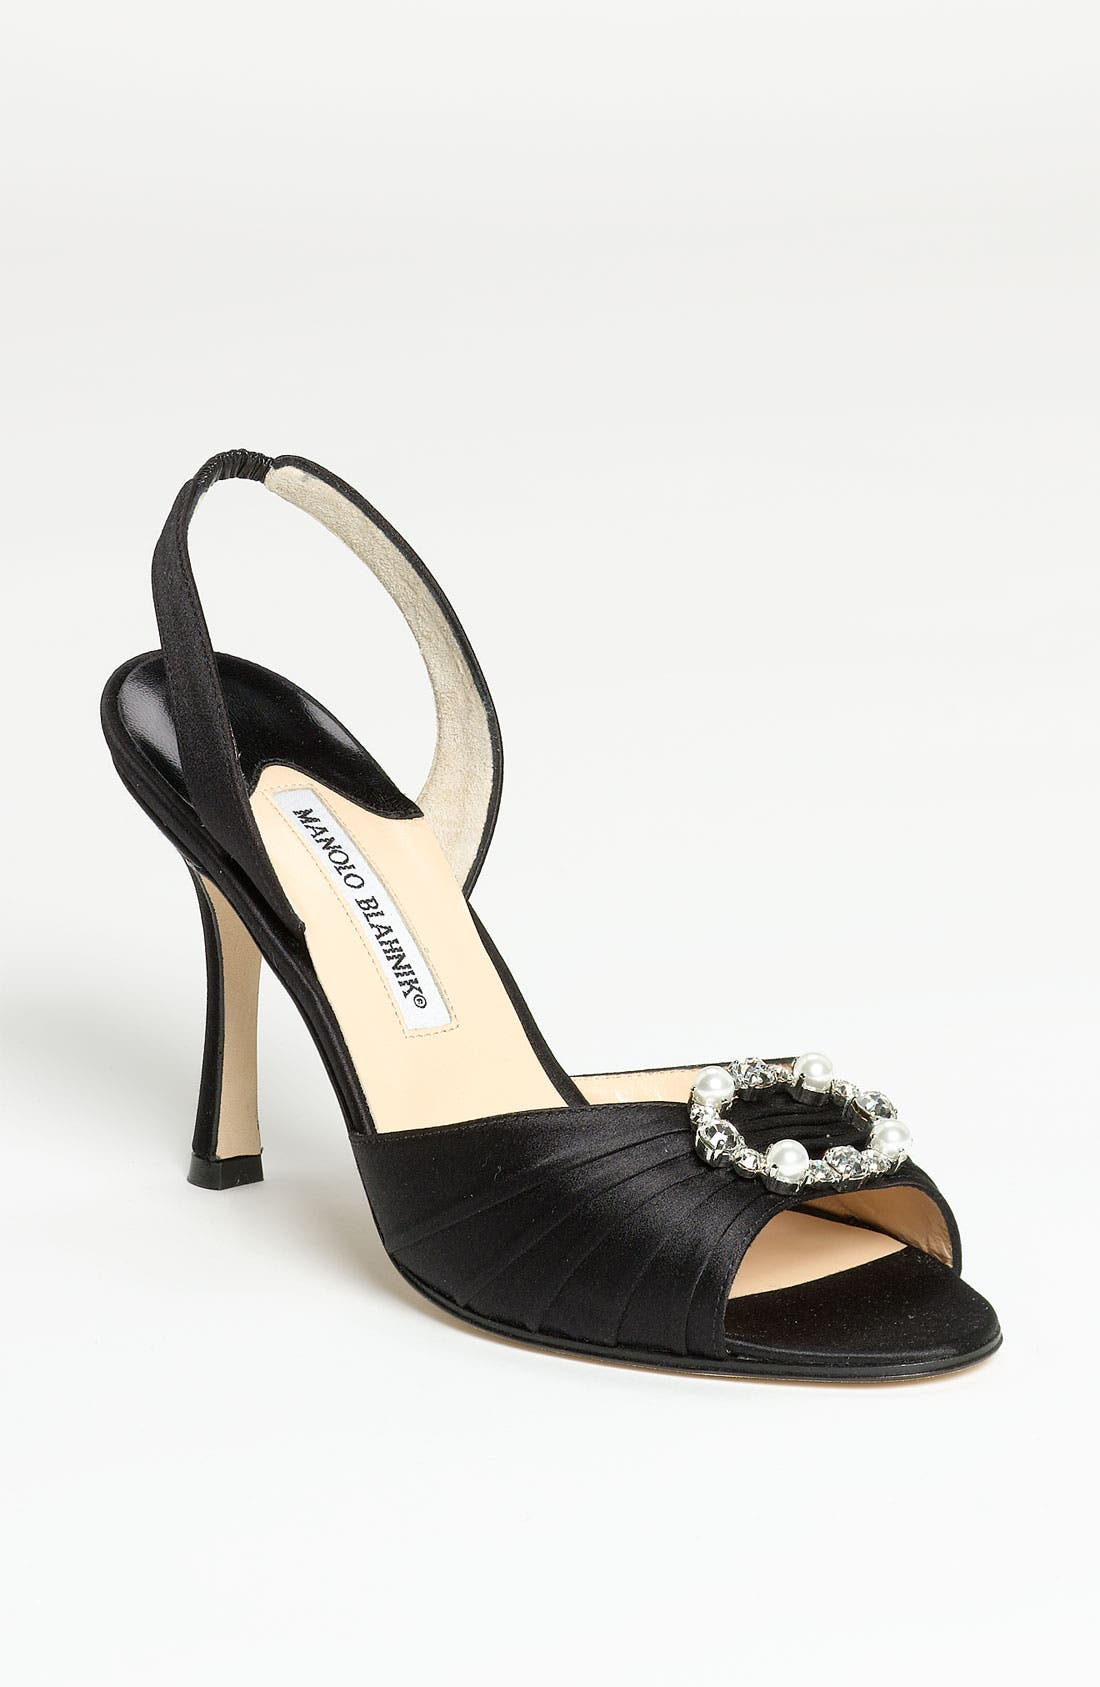 Alternate Image 1 Selected - Manolo Blahnik 'Sedaraby' Embellished Slingback Sandal